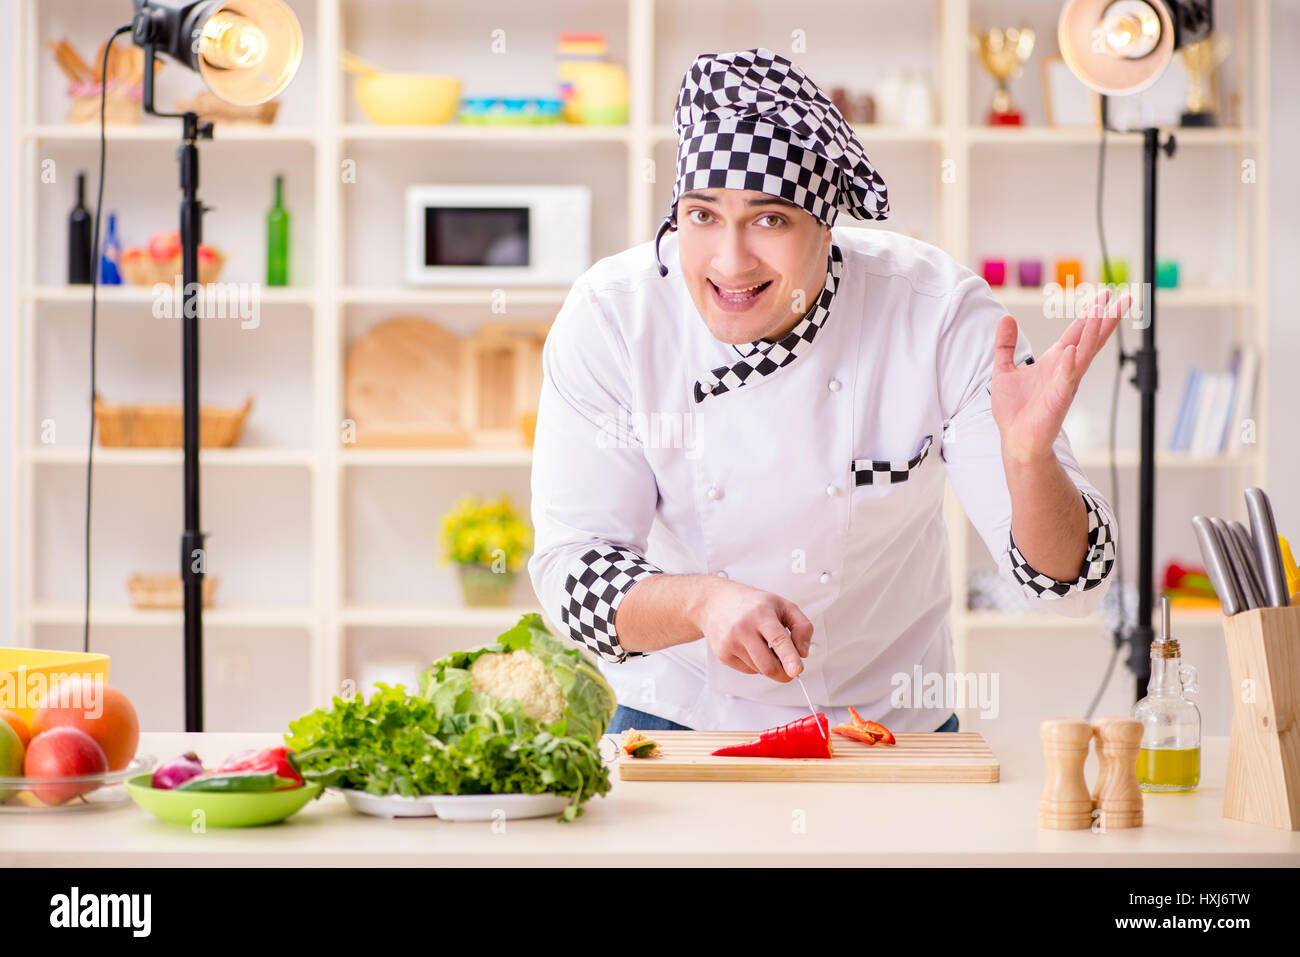 Food cooking tv show in the studio Stock Photo: 136854169 - Alamy